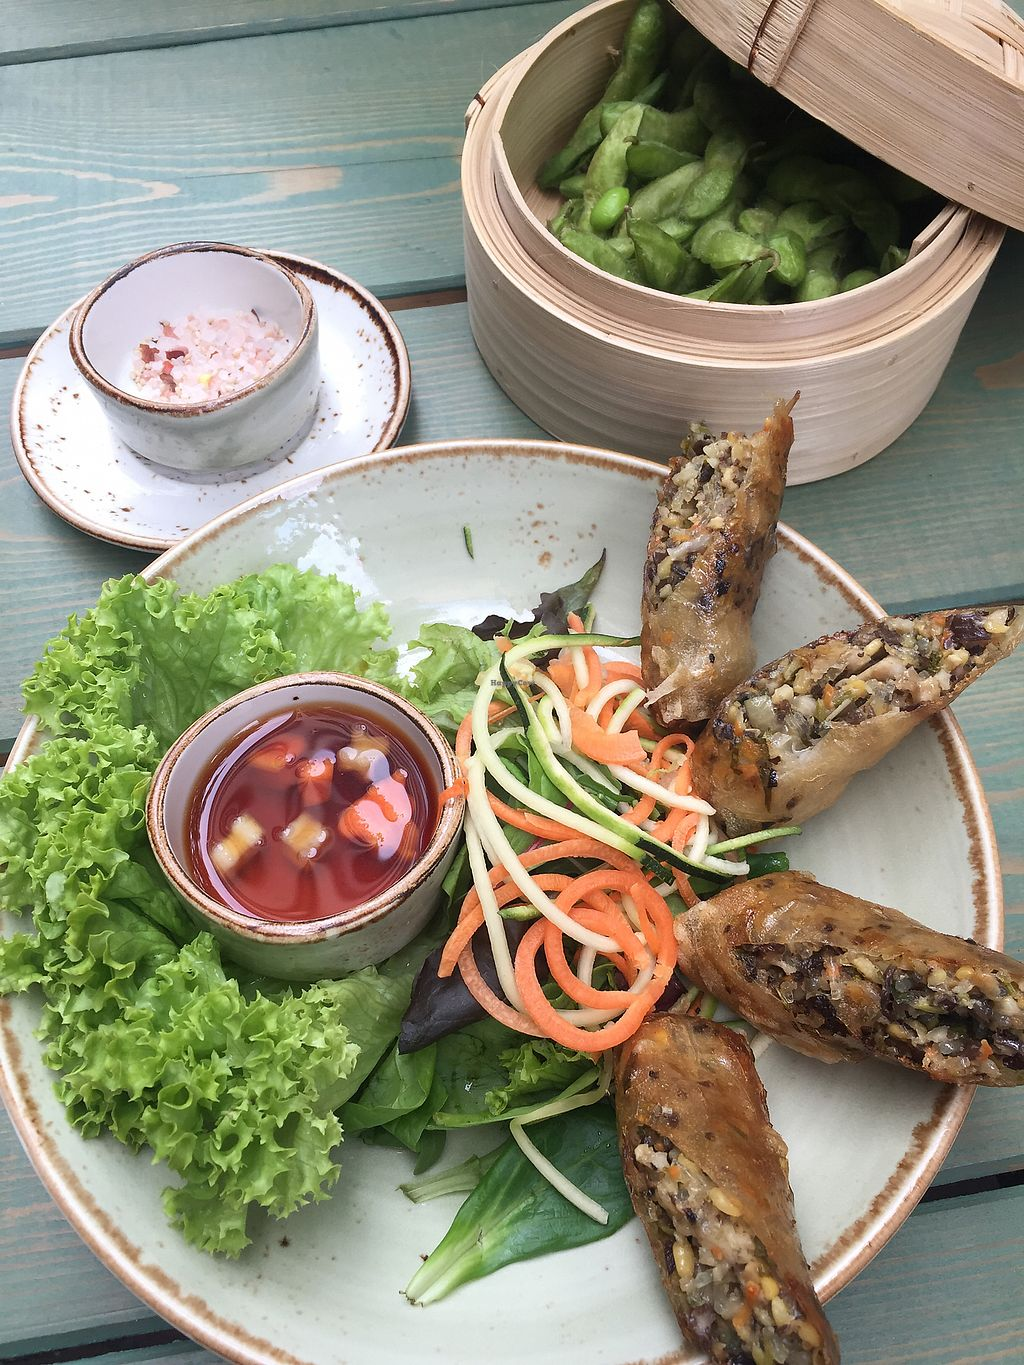 """Photo of Vietal-Kitchen  by <a href=""""/members/profile/AlexaDomachowski"""">AlexaDomachowski</a> <br/>Edamame and Fried Rice paper rolls.  <br/> May 20, 2018  - <a href='/contact/abuse/image/114240/402387'>Report</a>"""